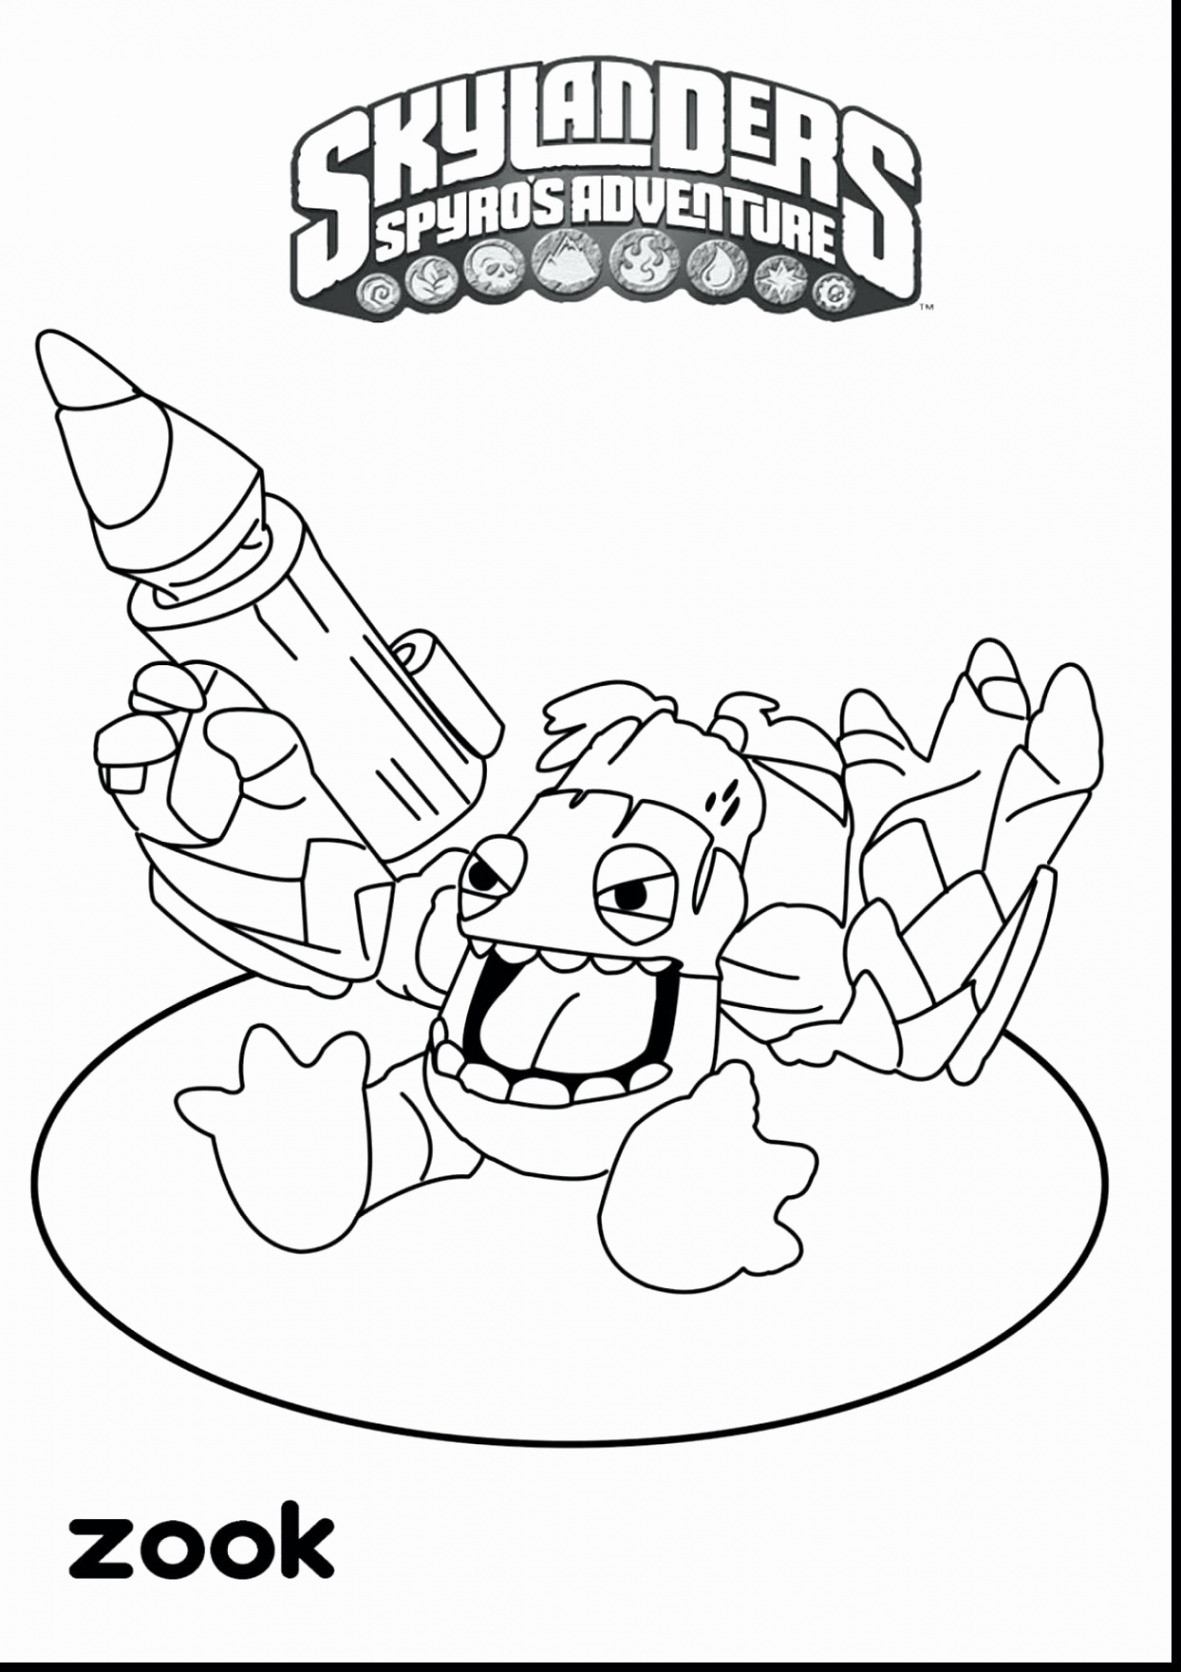 Christmas Coloring Sheets That You Can Print With Luxury Stocking Popular Pages